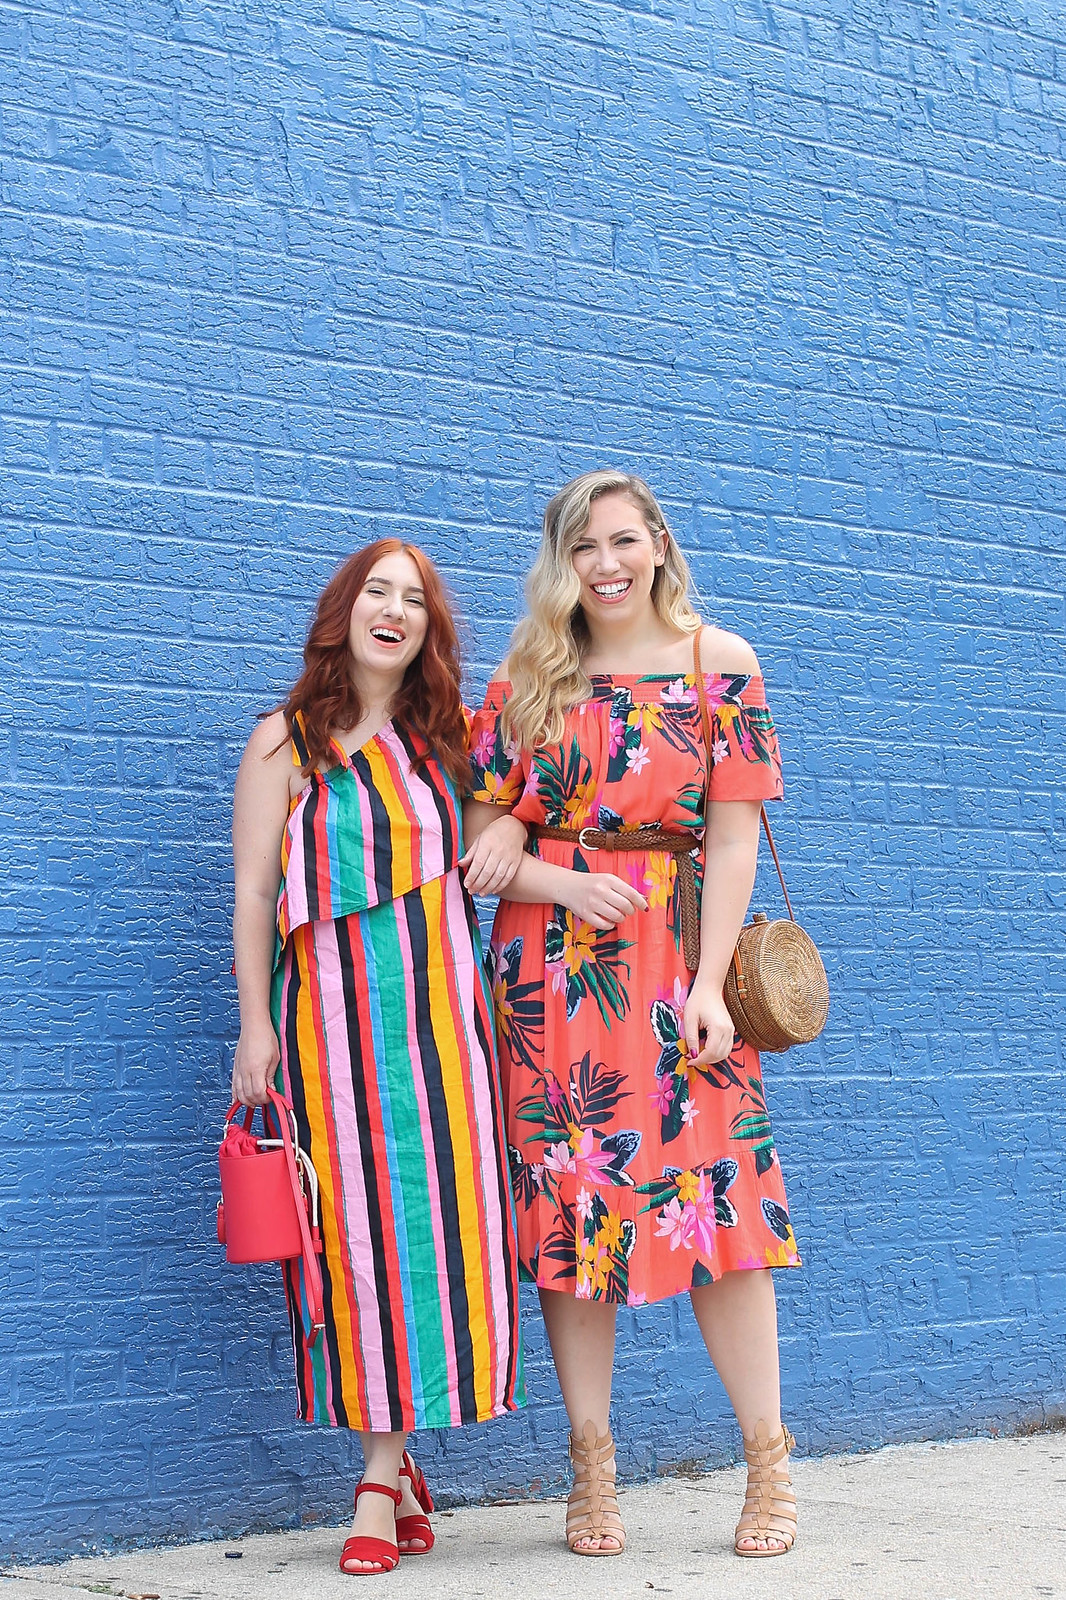 Colorful Printed Summer Outfit Inspiration Under $40 Style Fashion Bold Bright Blogger Friends Blue Brick Wall NYC